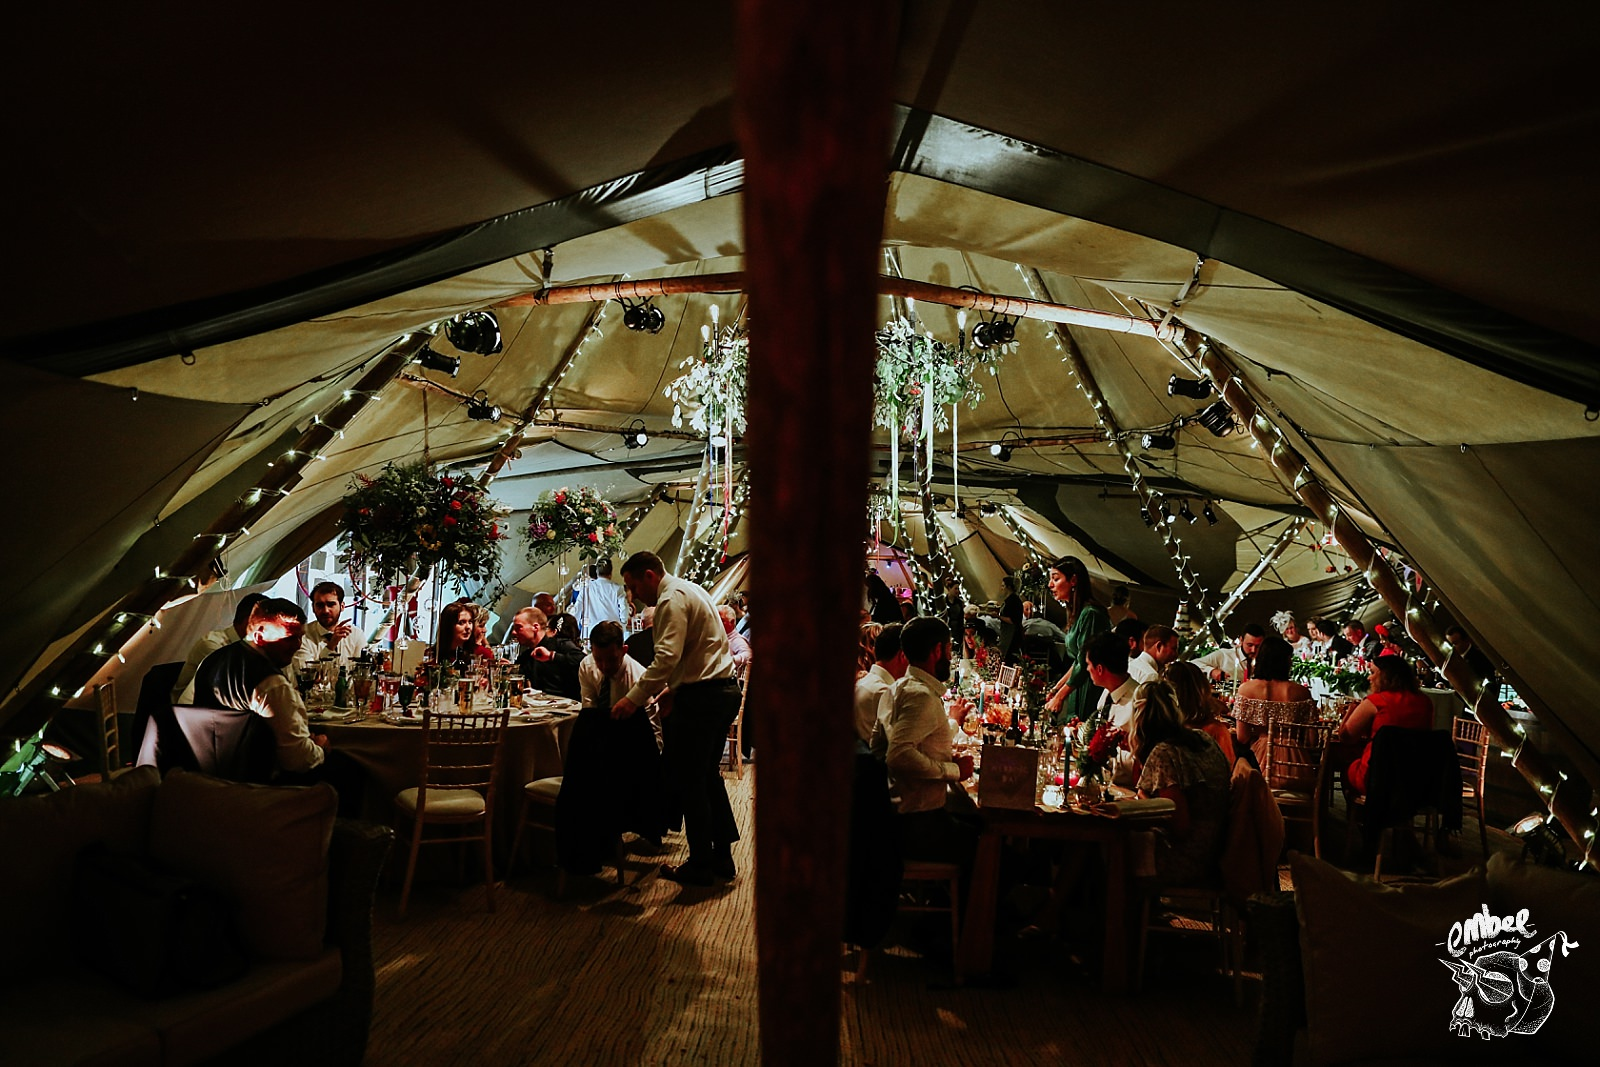 inside of wedding tipi